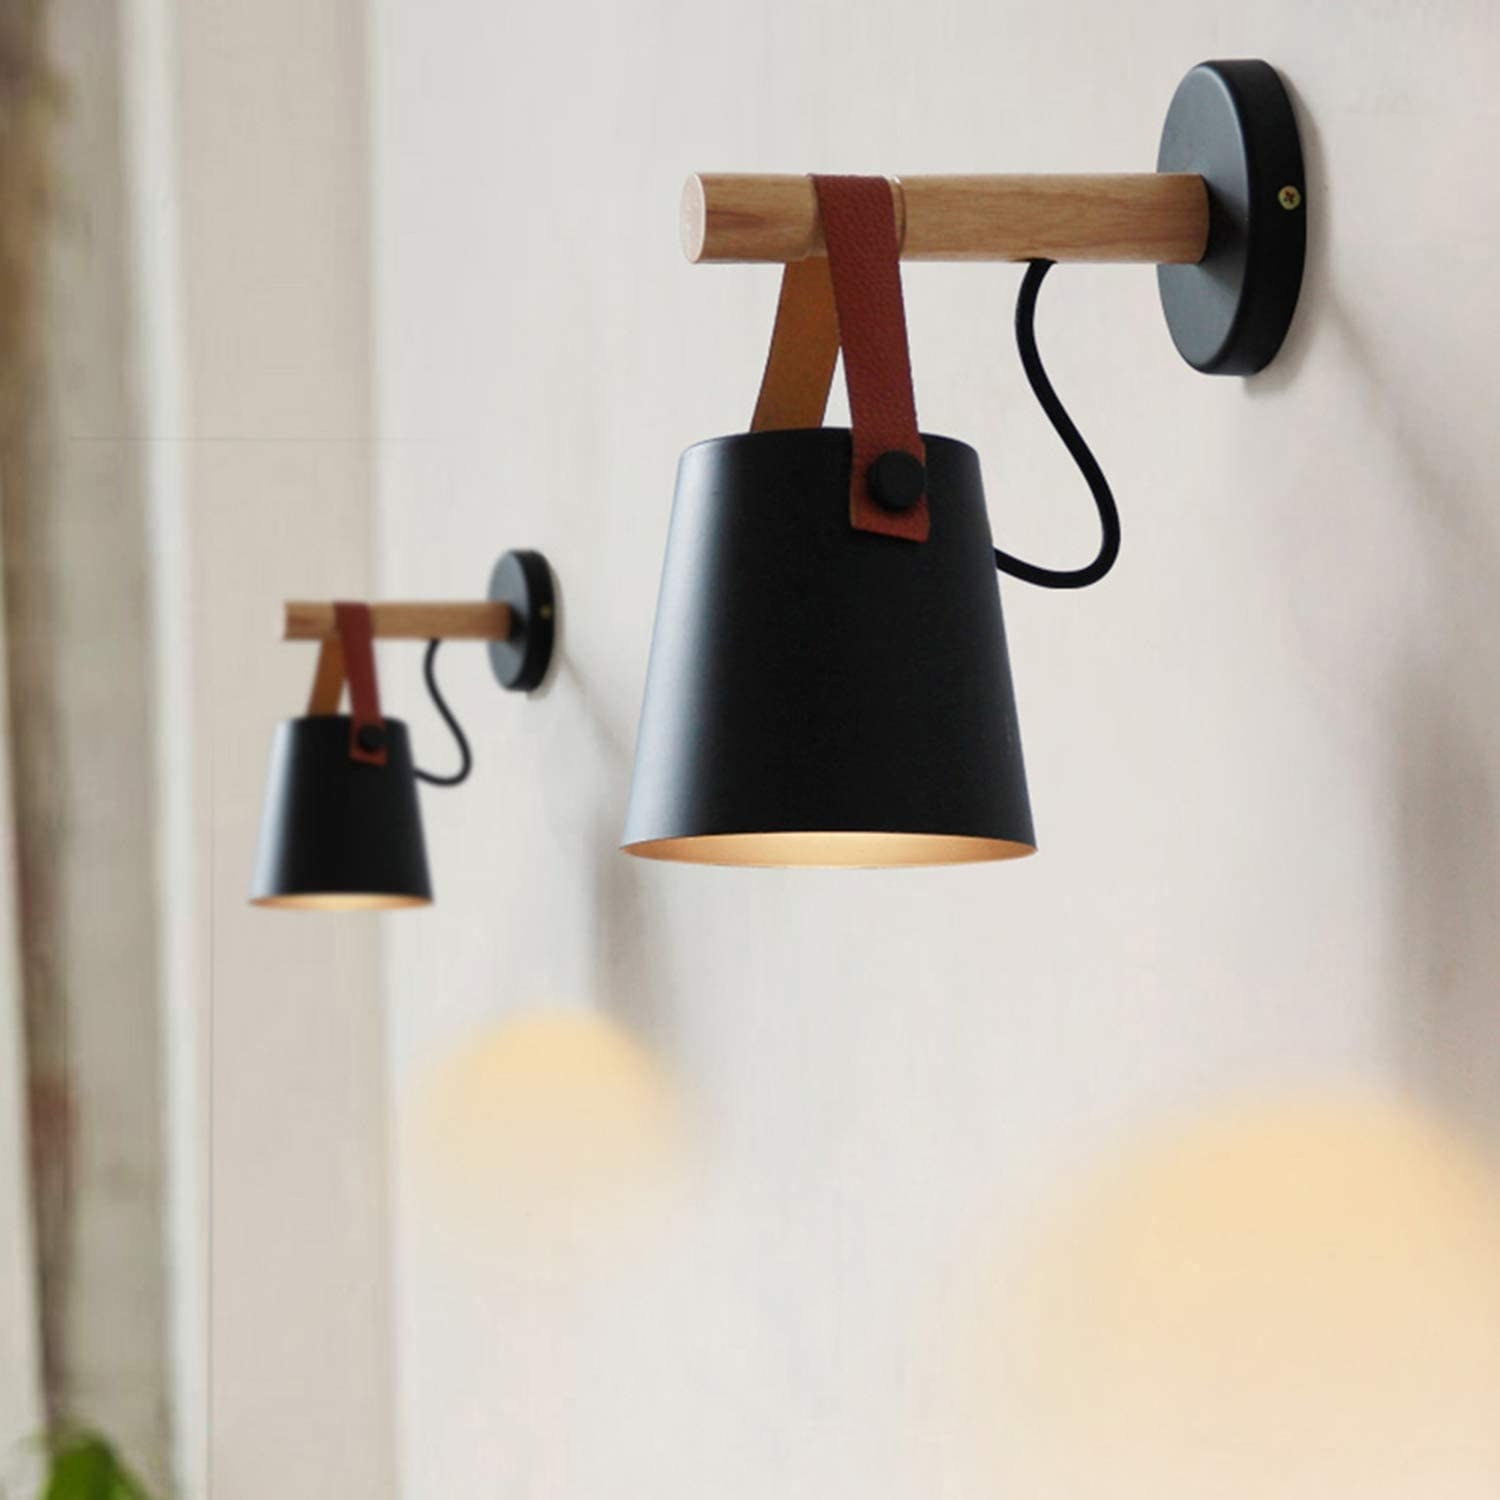 Black metal light shade with leather strap mounted to wooden peg on black metal base